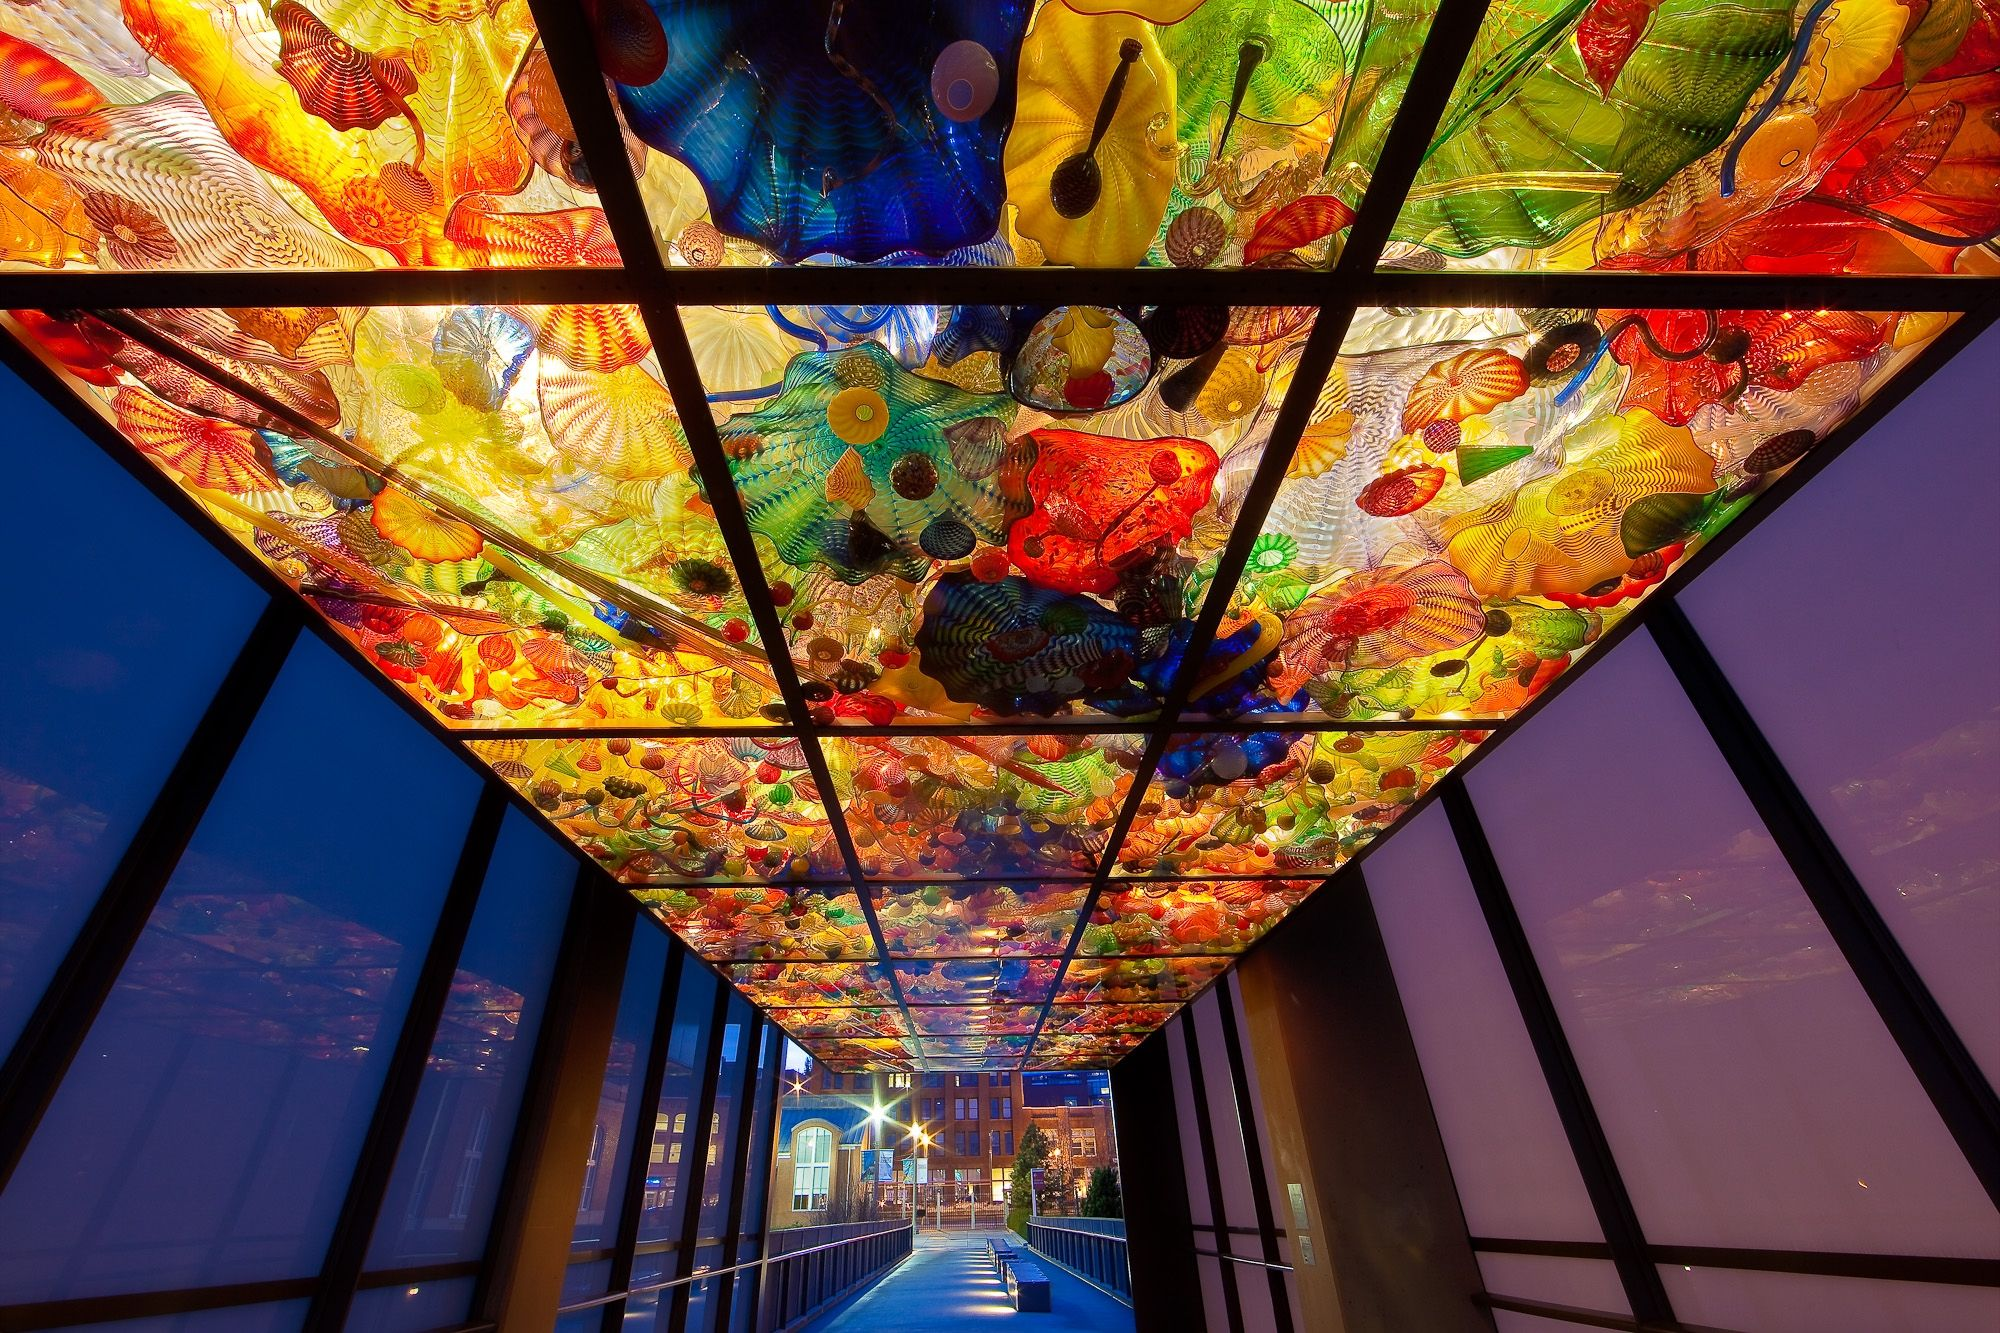 Ceiling dale chihuly glass art pinterest